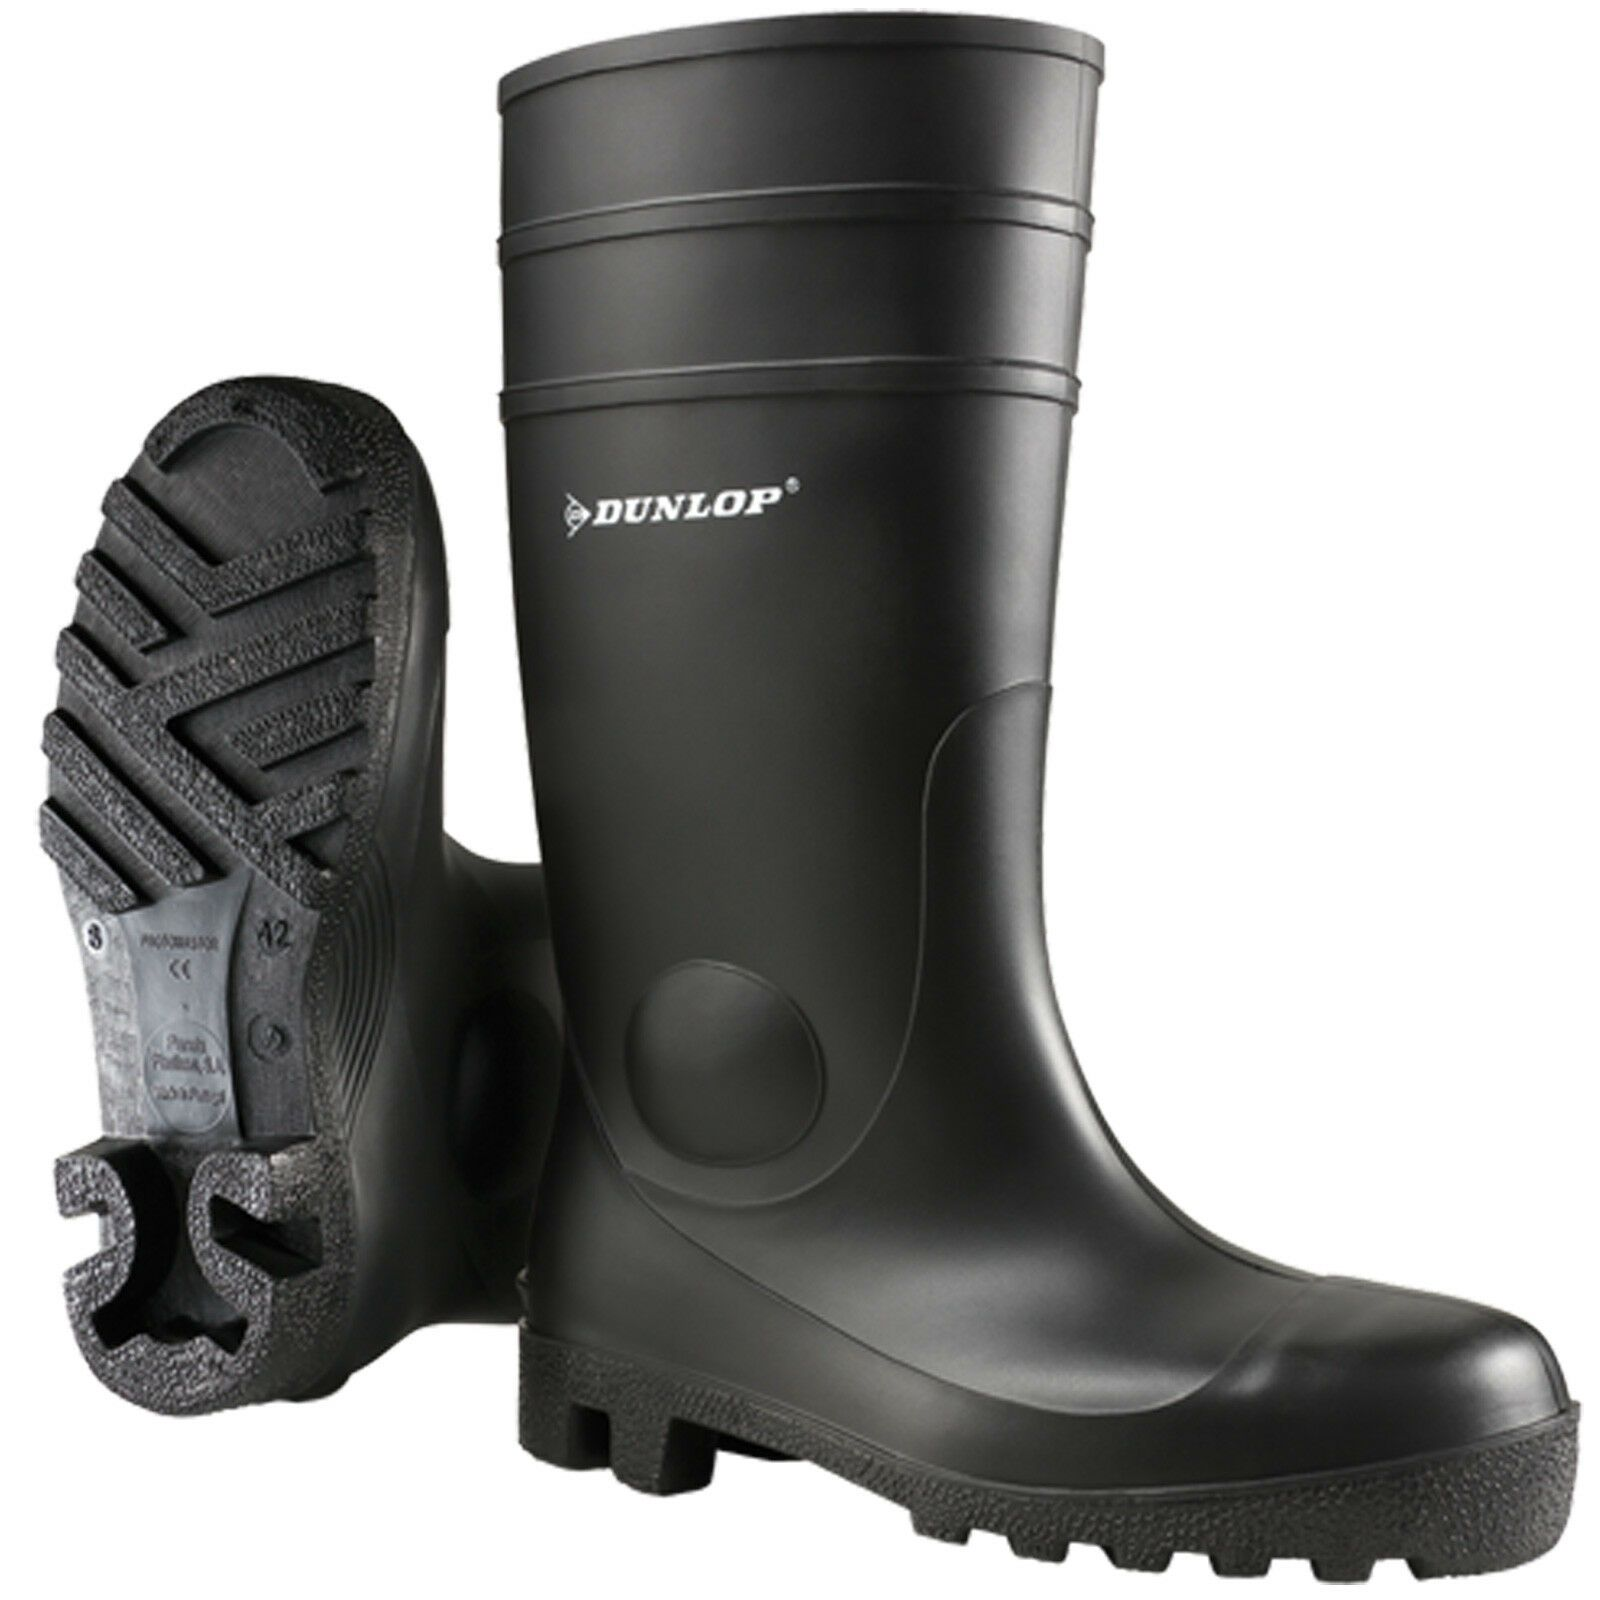 Dunlop Unisex Mens Womens Safety Wellies Boots Steel Toe